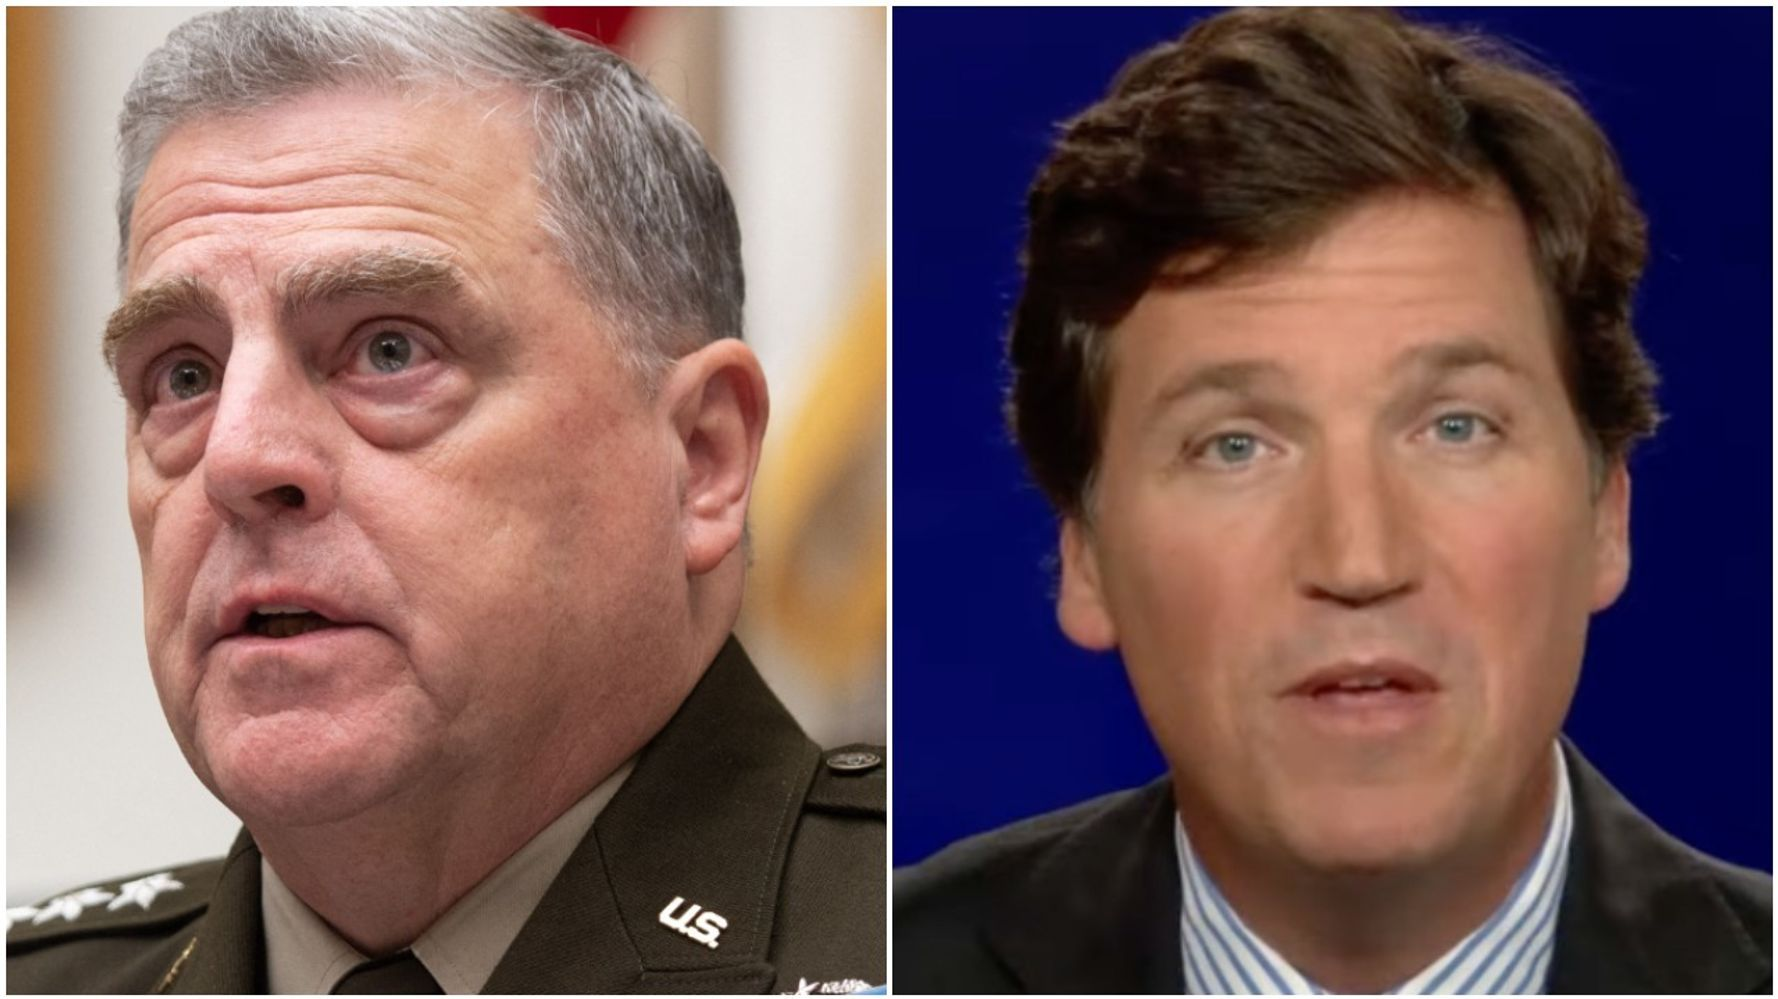 'Coward' Tucker Carlson Torched For Calling Top U.S. General 'A Pig' And 'Stupid'